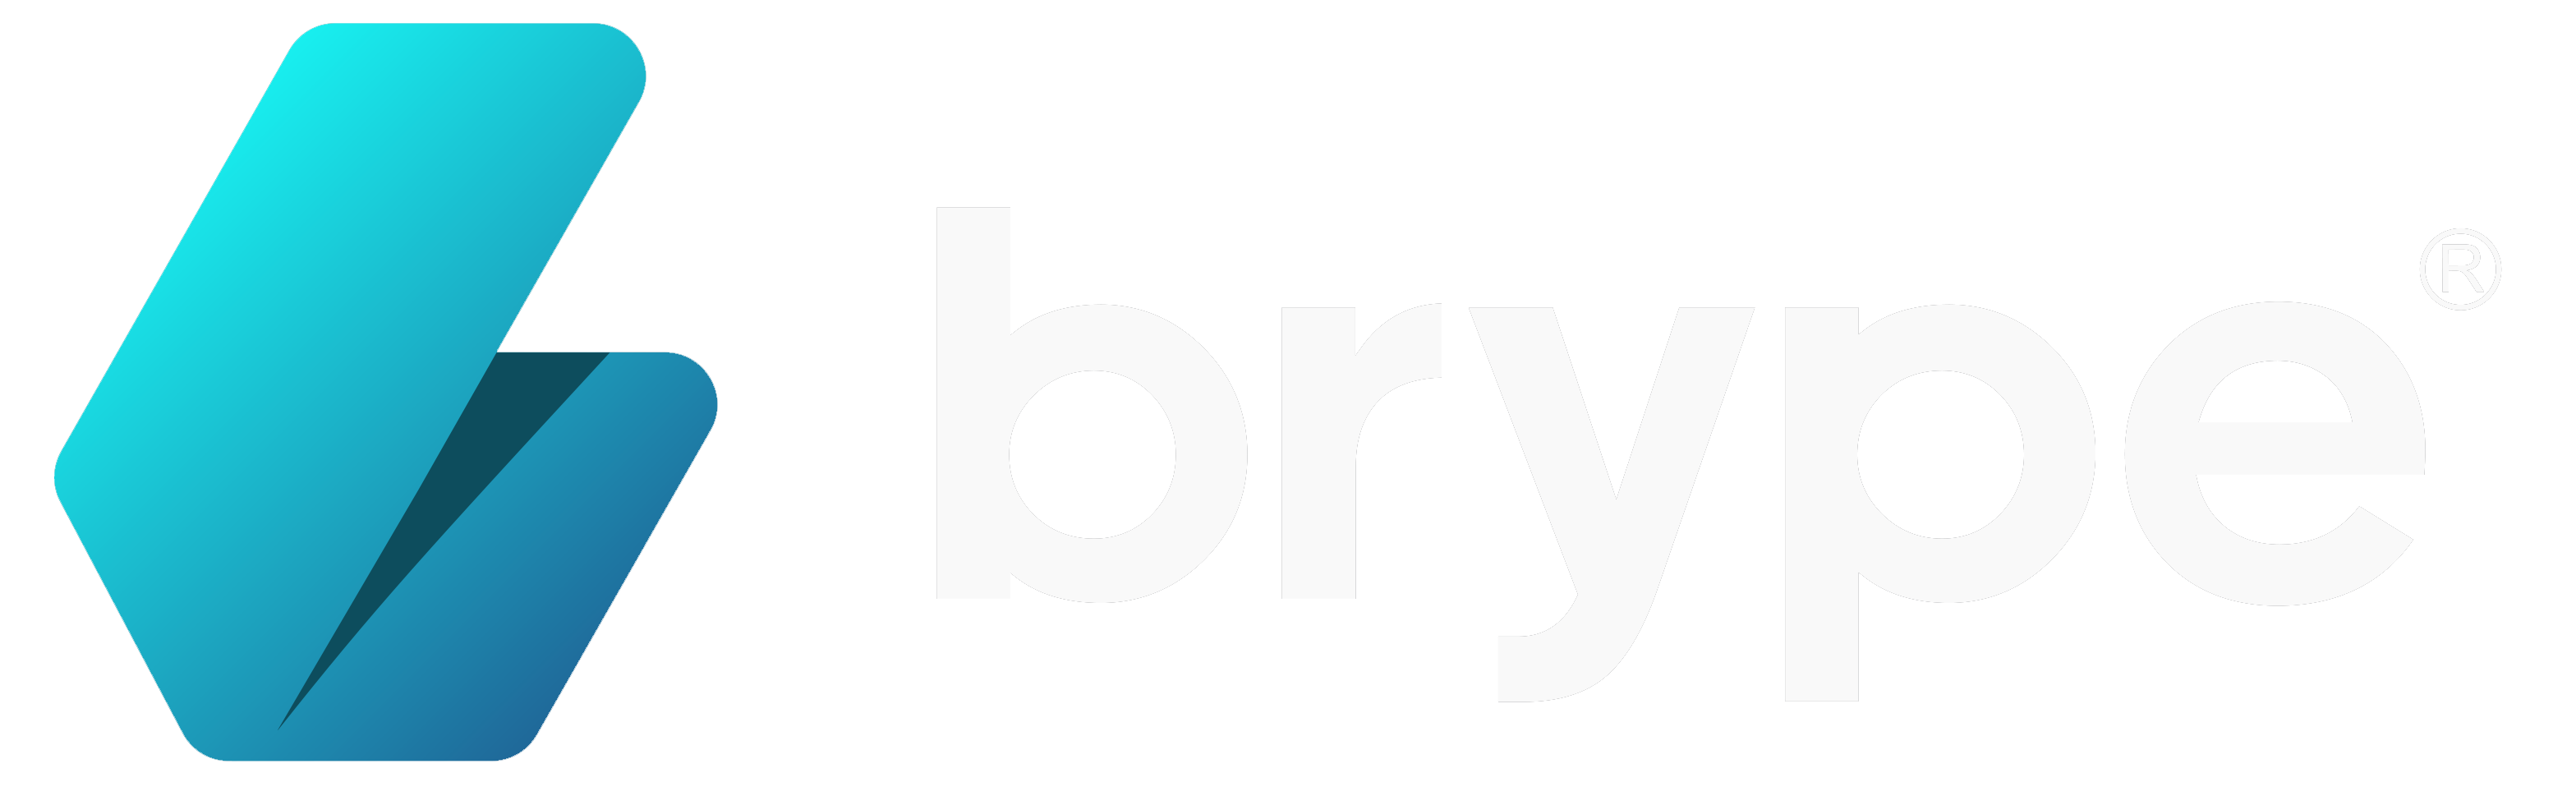 brype